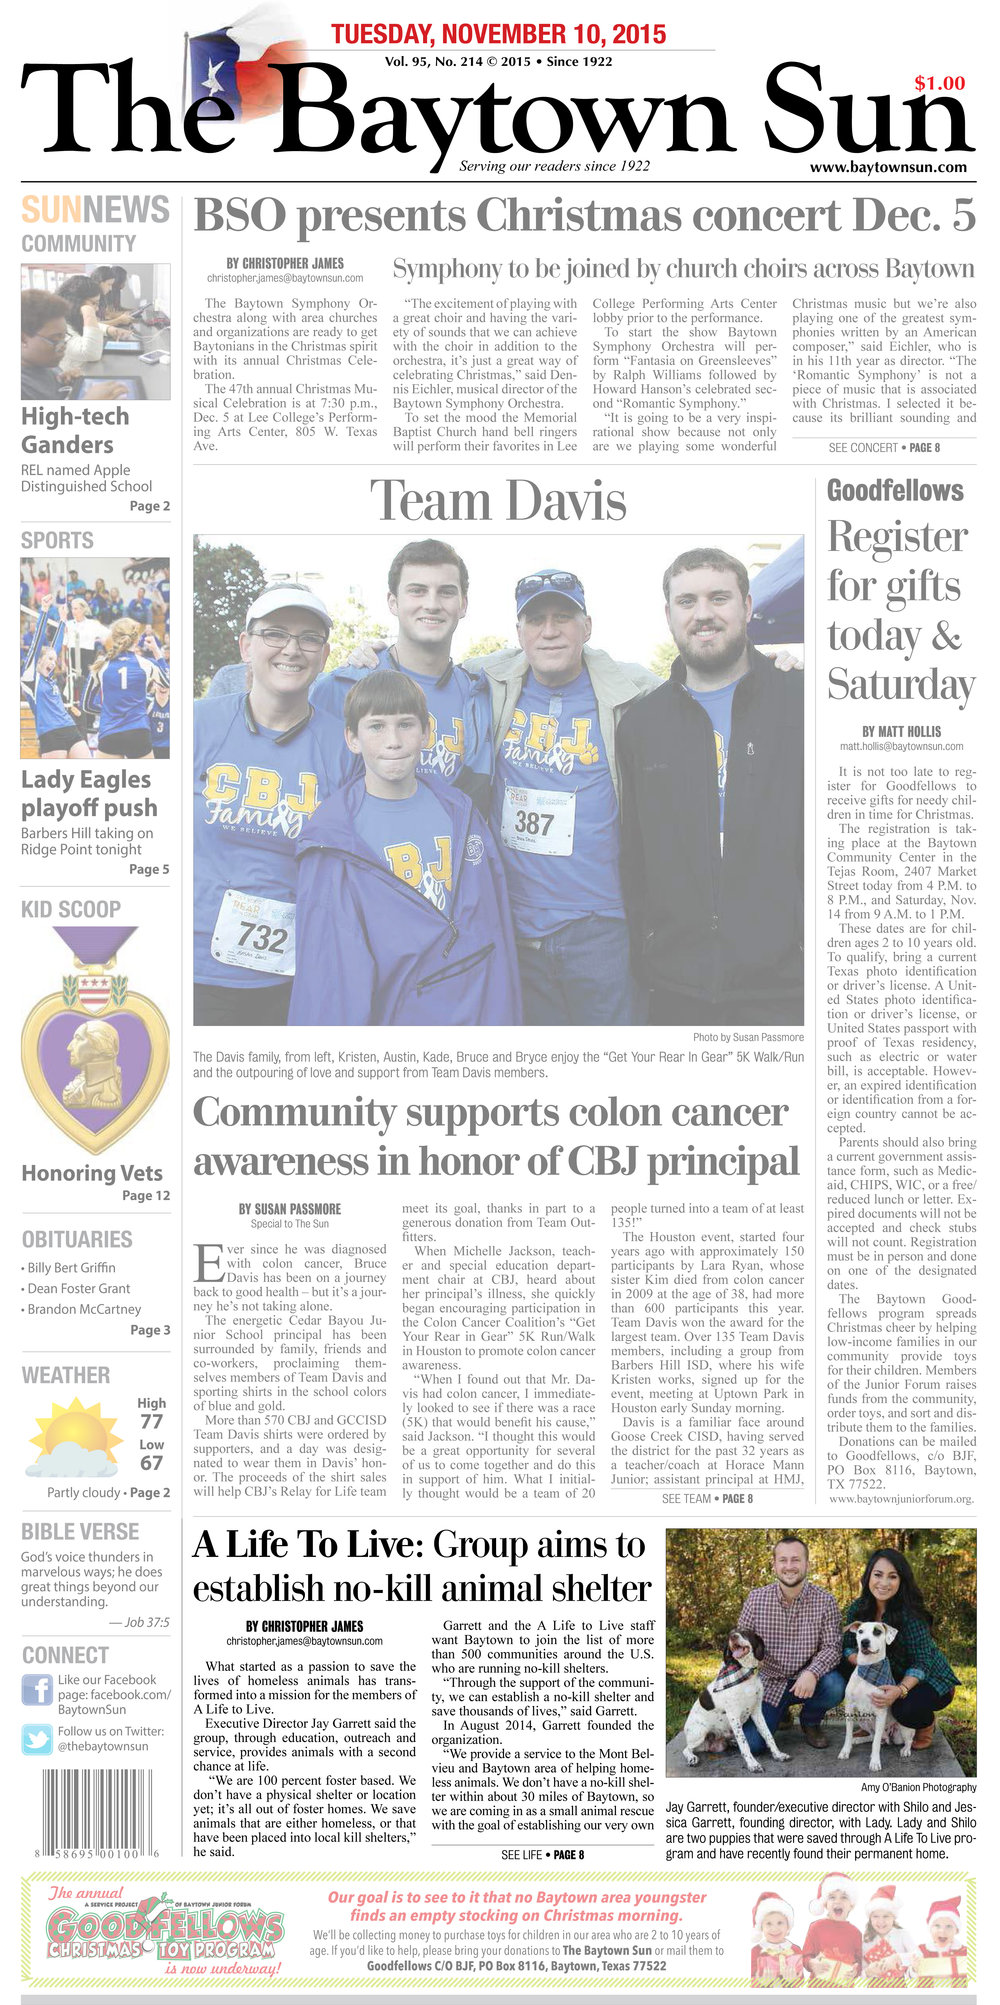 11.10.15 - Baytown Sun - A Life to Live Overview - Page 1.jpg